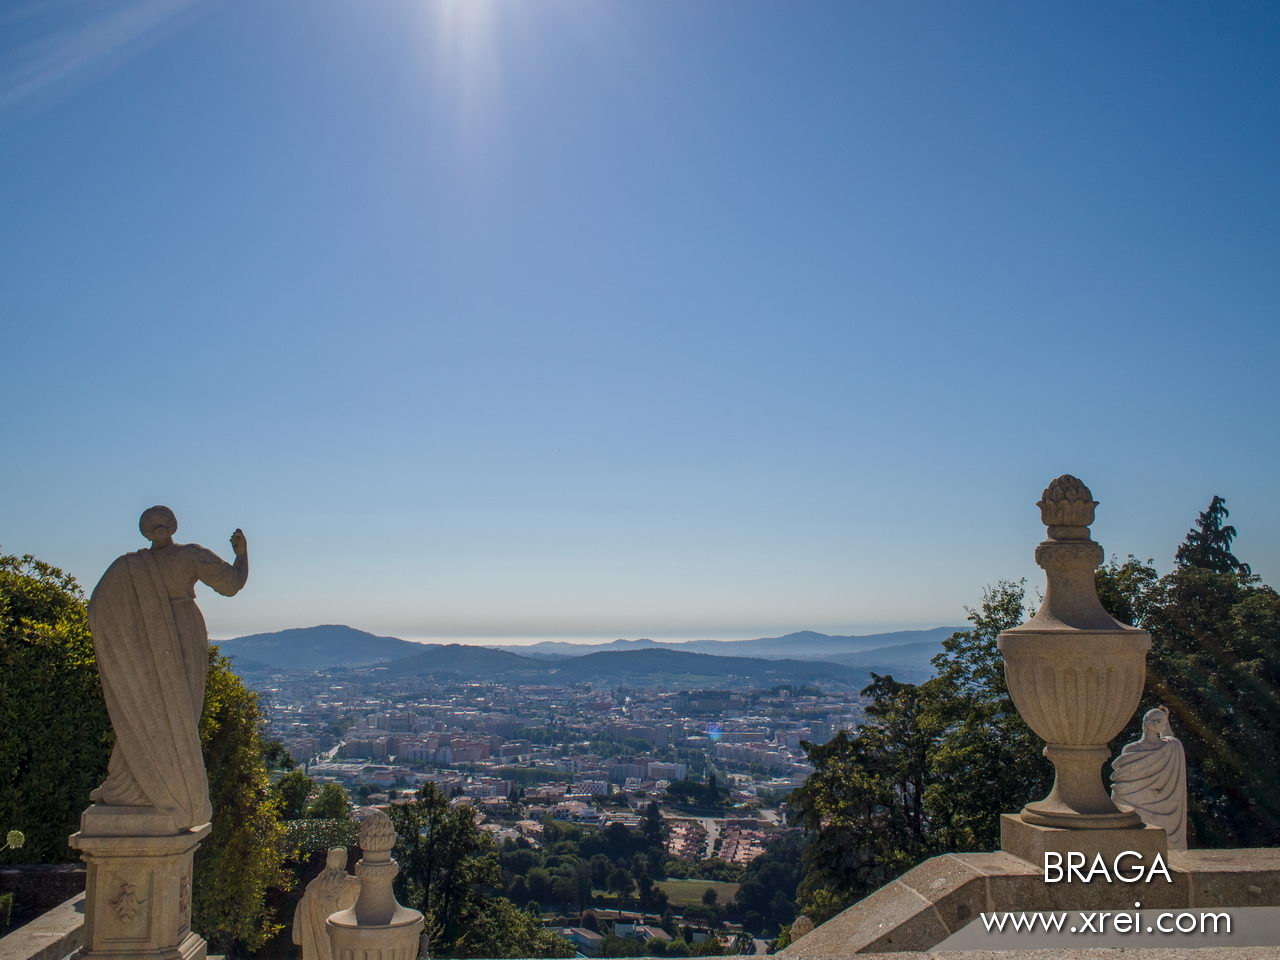 Braga, one of the oldest cities in Europe founded in 16 BC known as the Portuguese Rome